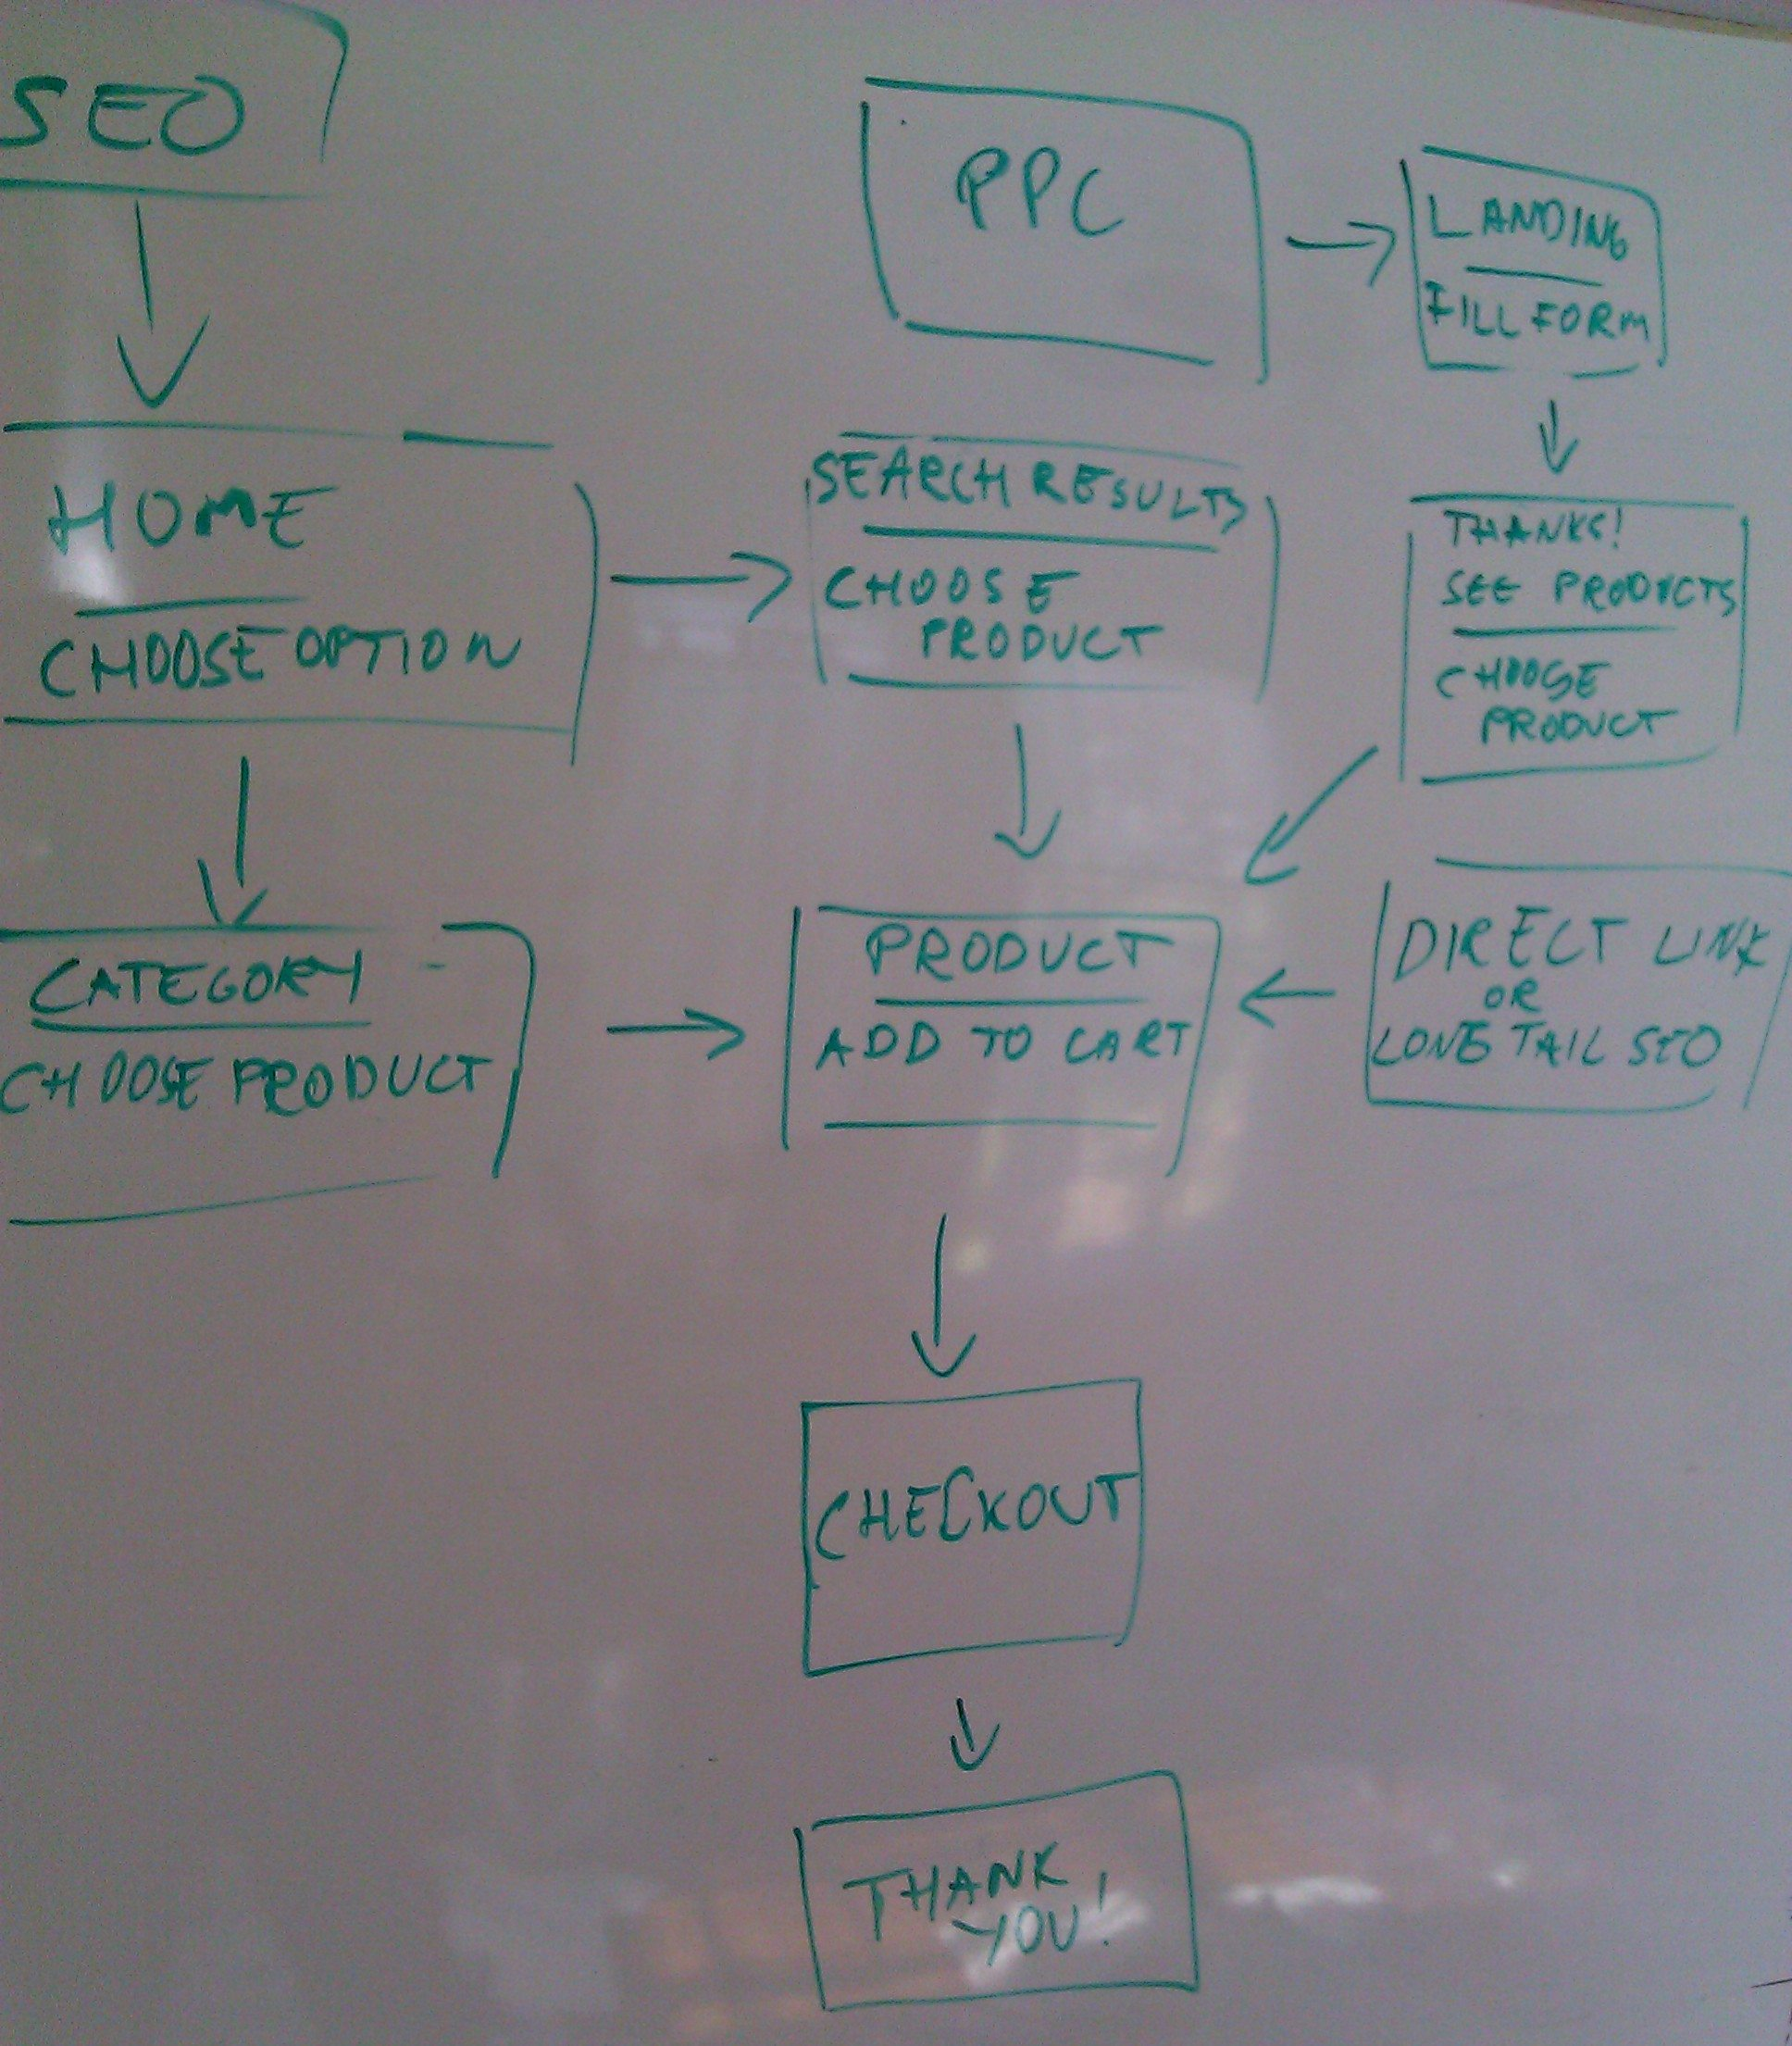 example of user flow diagram.